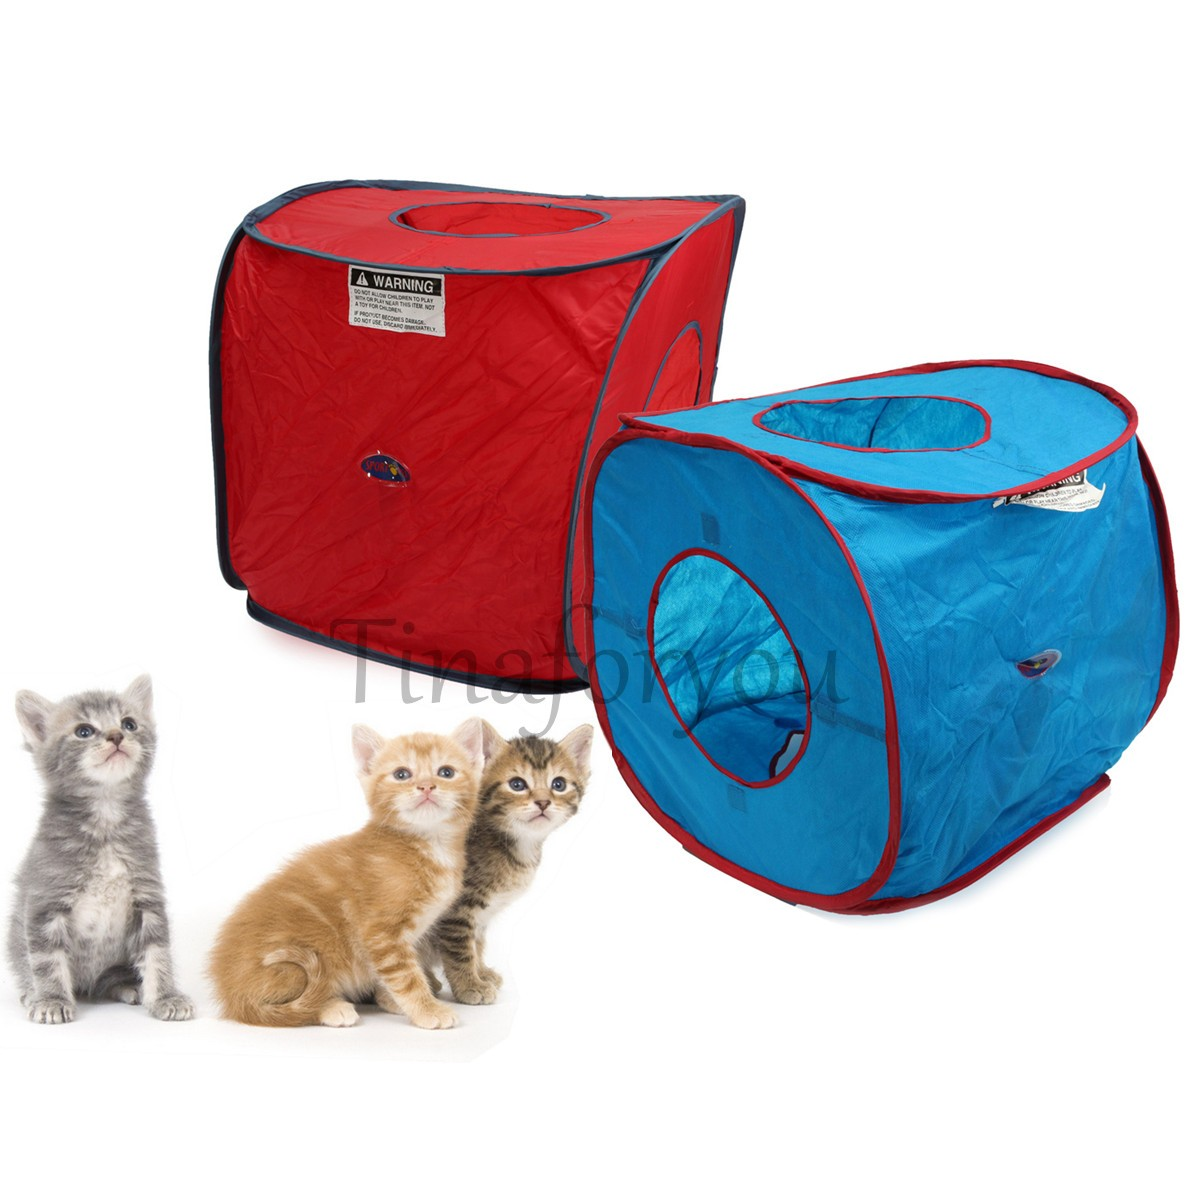 Cat kitten pop up tent playground toys foldable rabbit dog for Cat tent